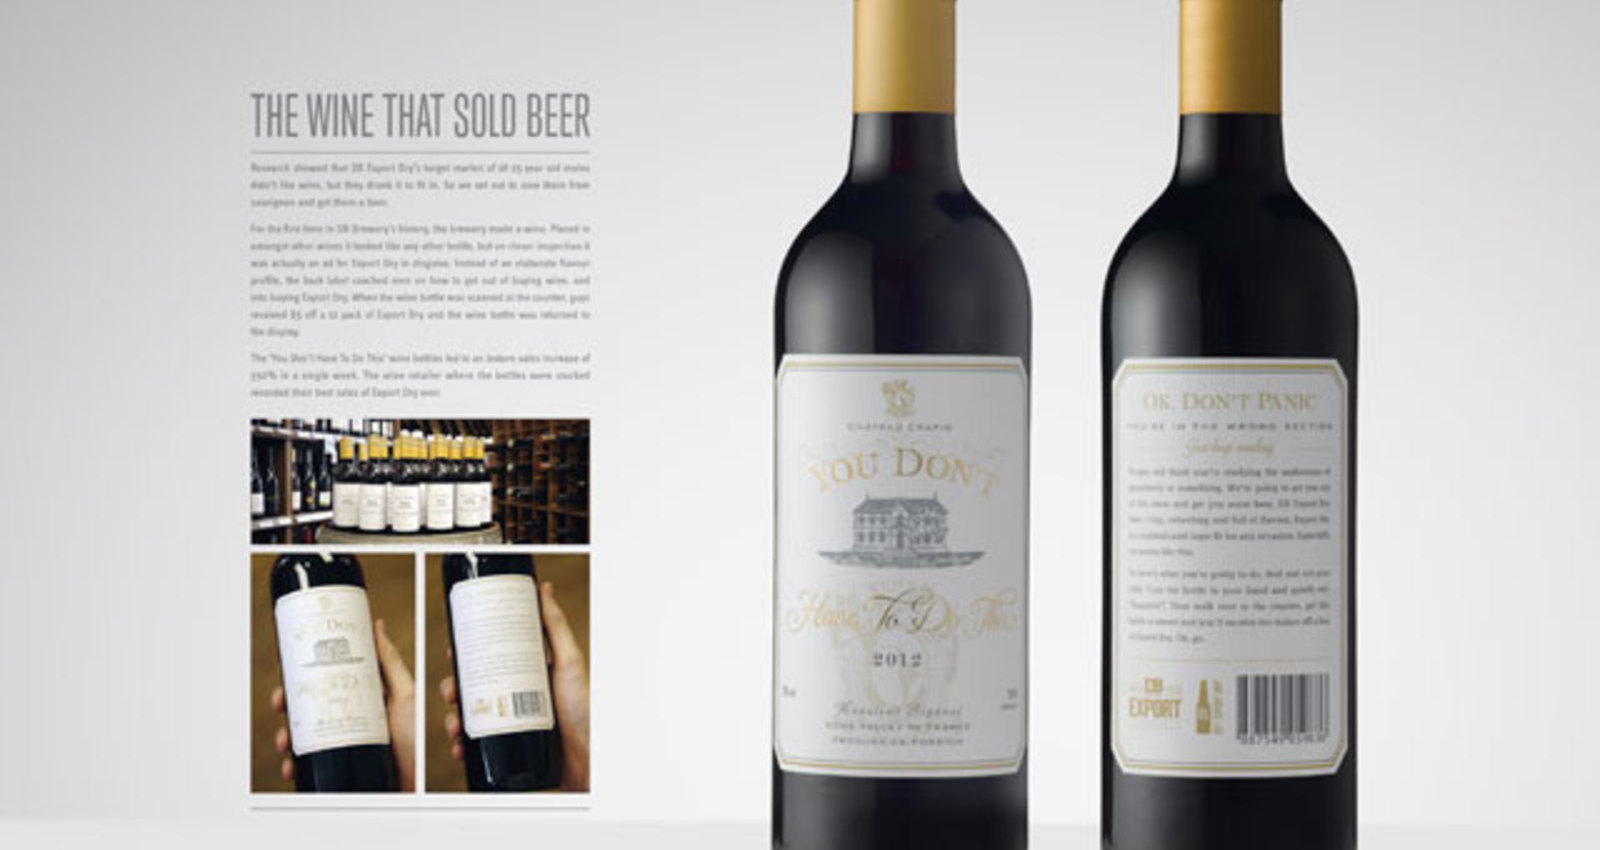 The Wine That Sold Beer